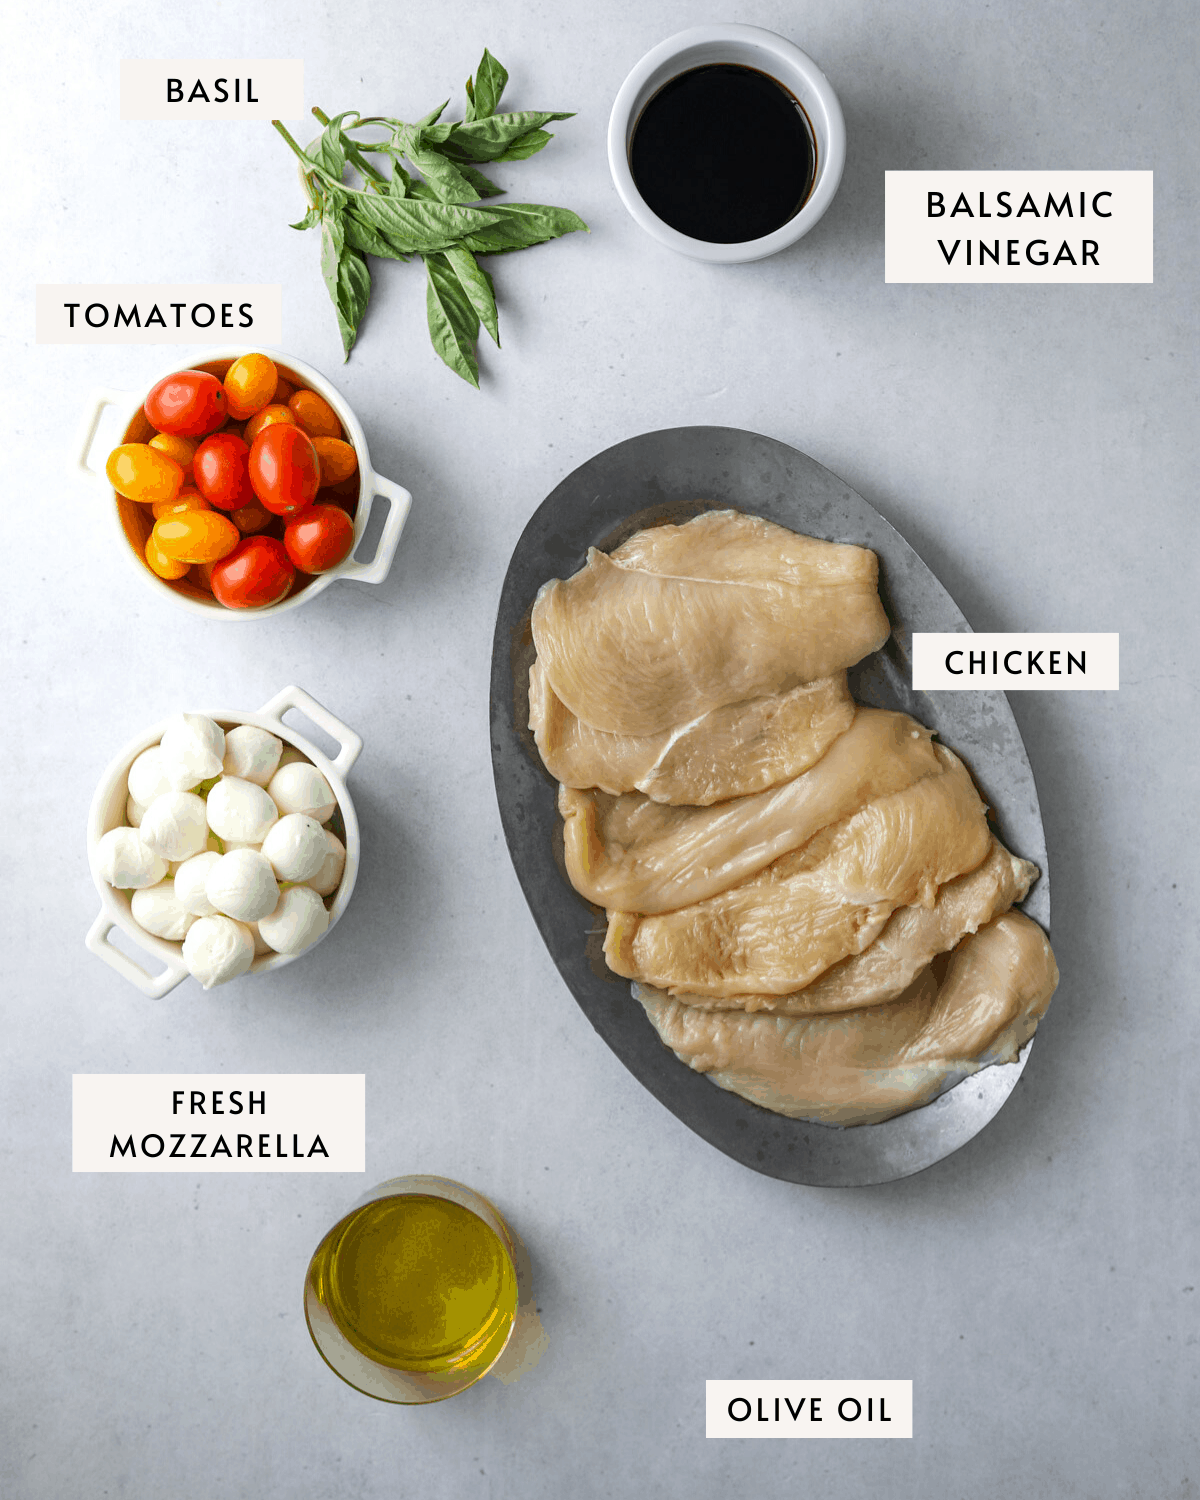 recipe ingredient mise en place: a bowl of tomatoes, a bowl of small fresh mozzarella balls, a platter of raw chicken, olive oil and balsamic vinegar